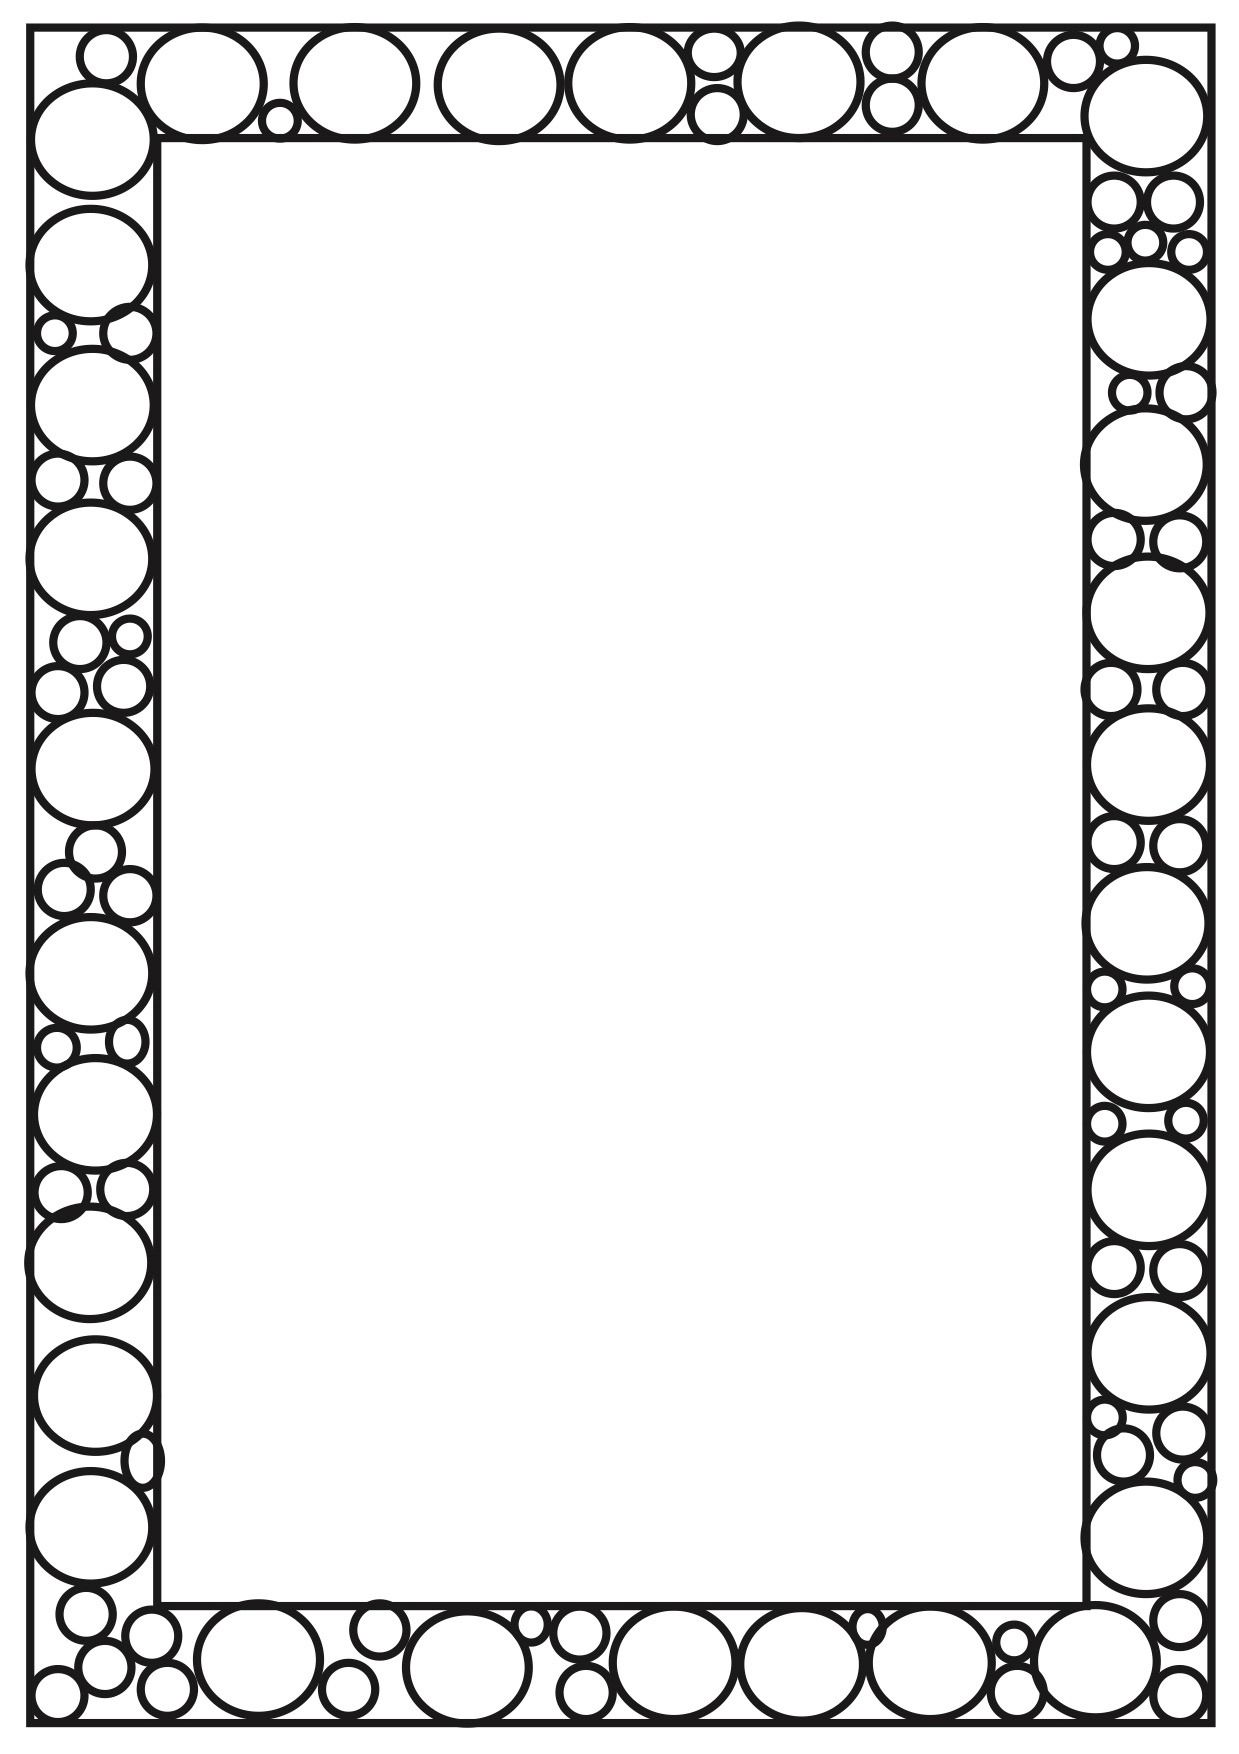 Worksheet Page Borders